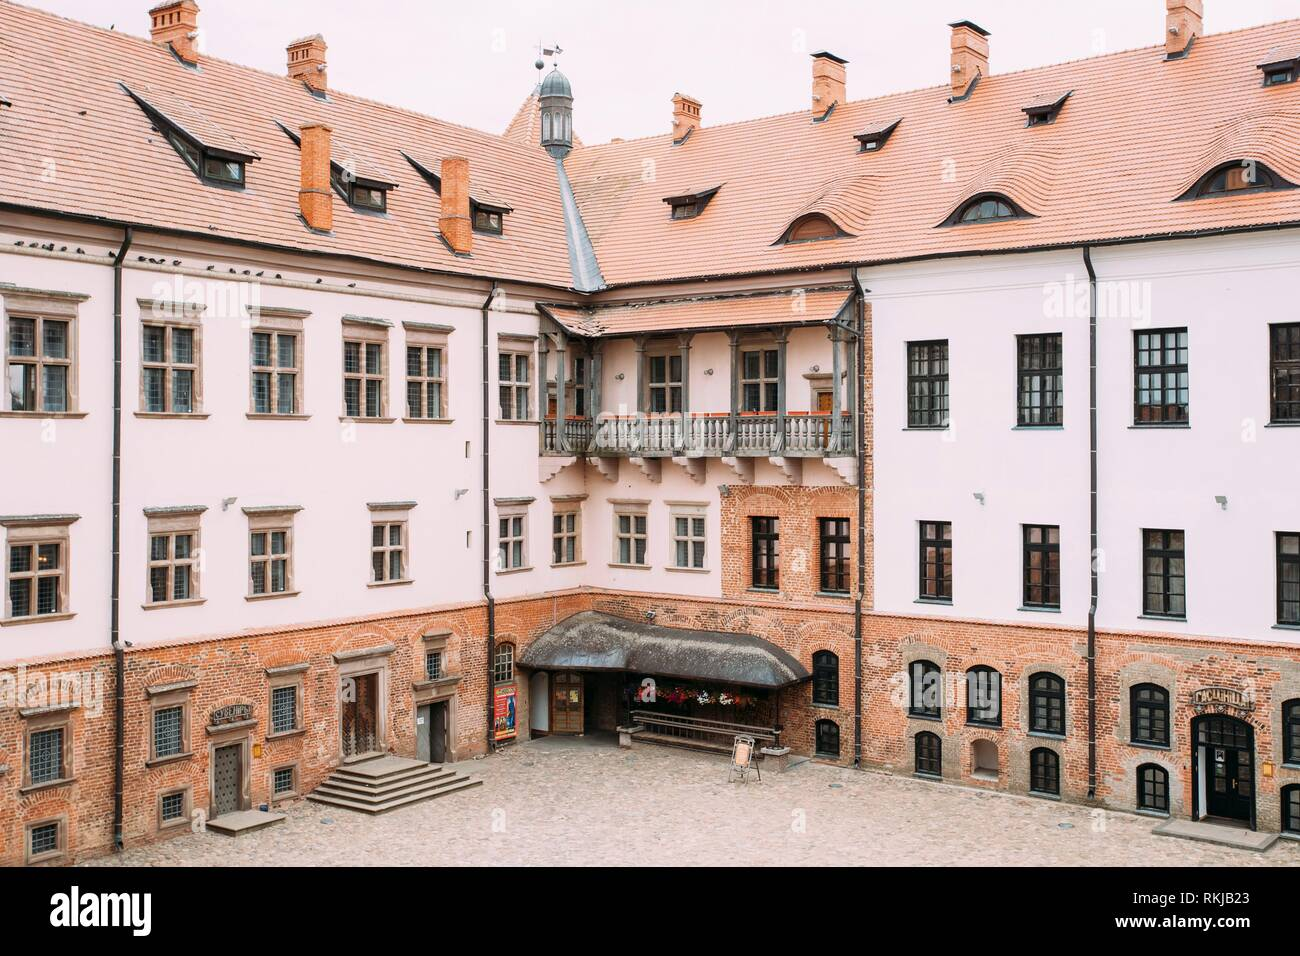 Mir, Belarus. Courtyard Of Castle. Architectural Ensemble Of Feudalism, Ancient Cultural Monument, UNESCO Heritage. Famous Landmark. - Stock Image